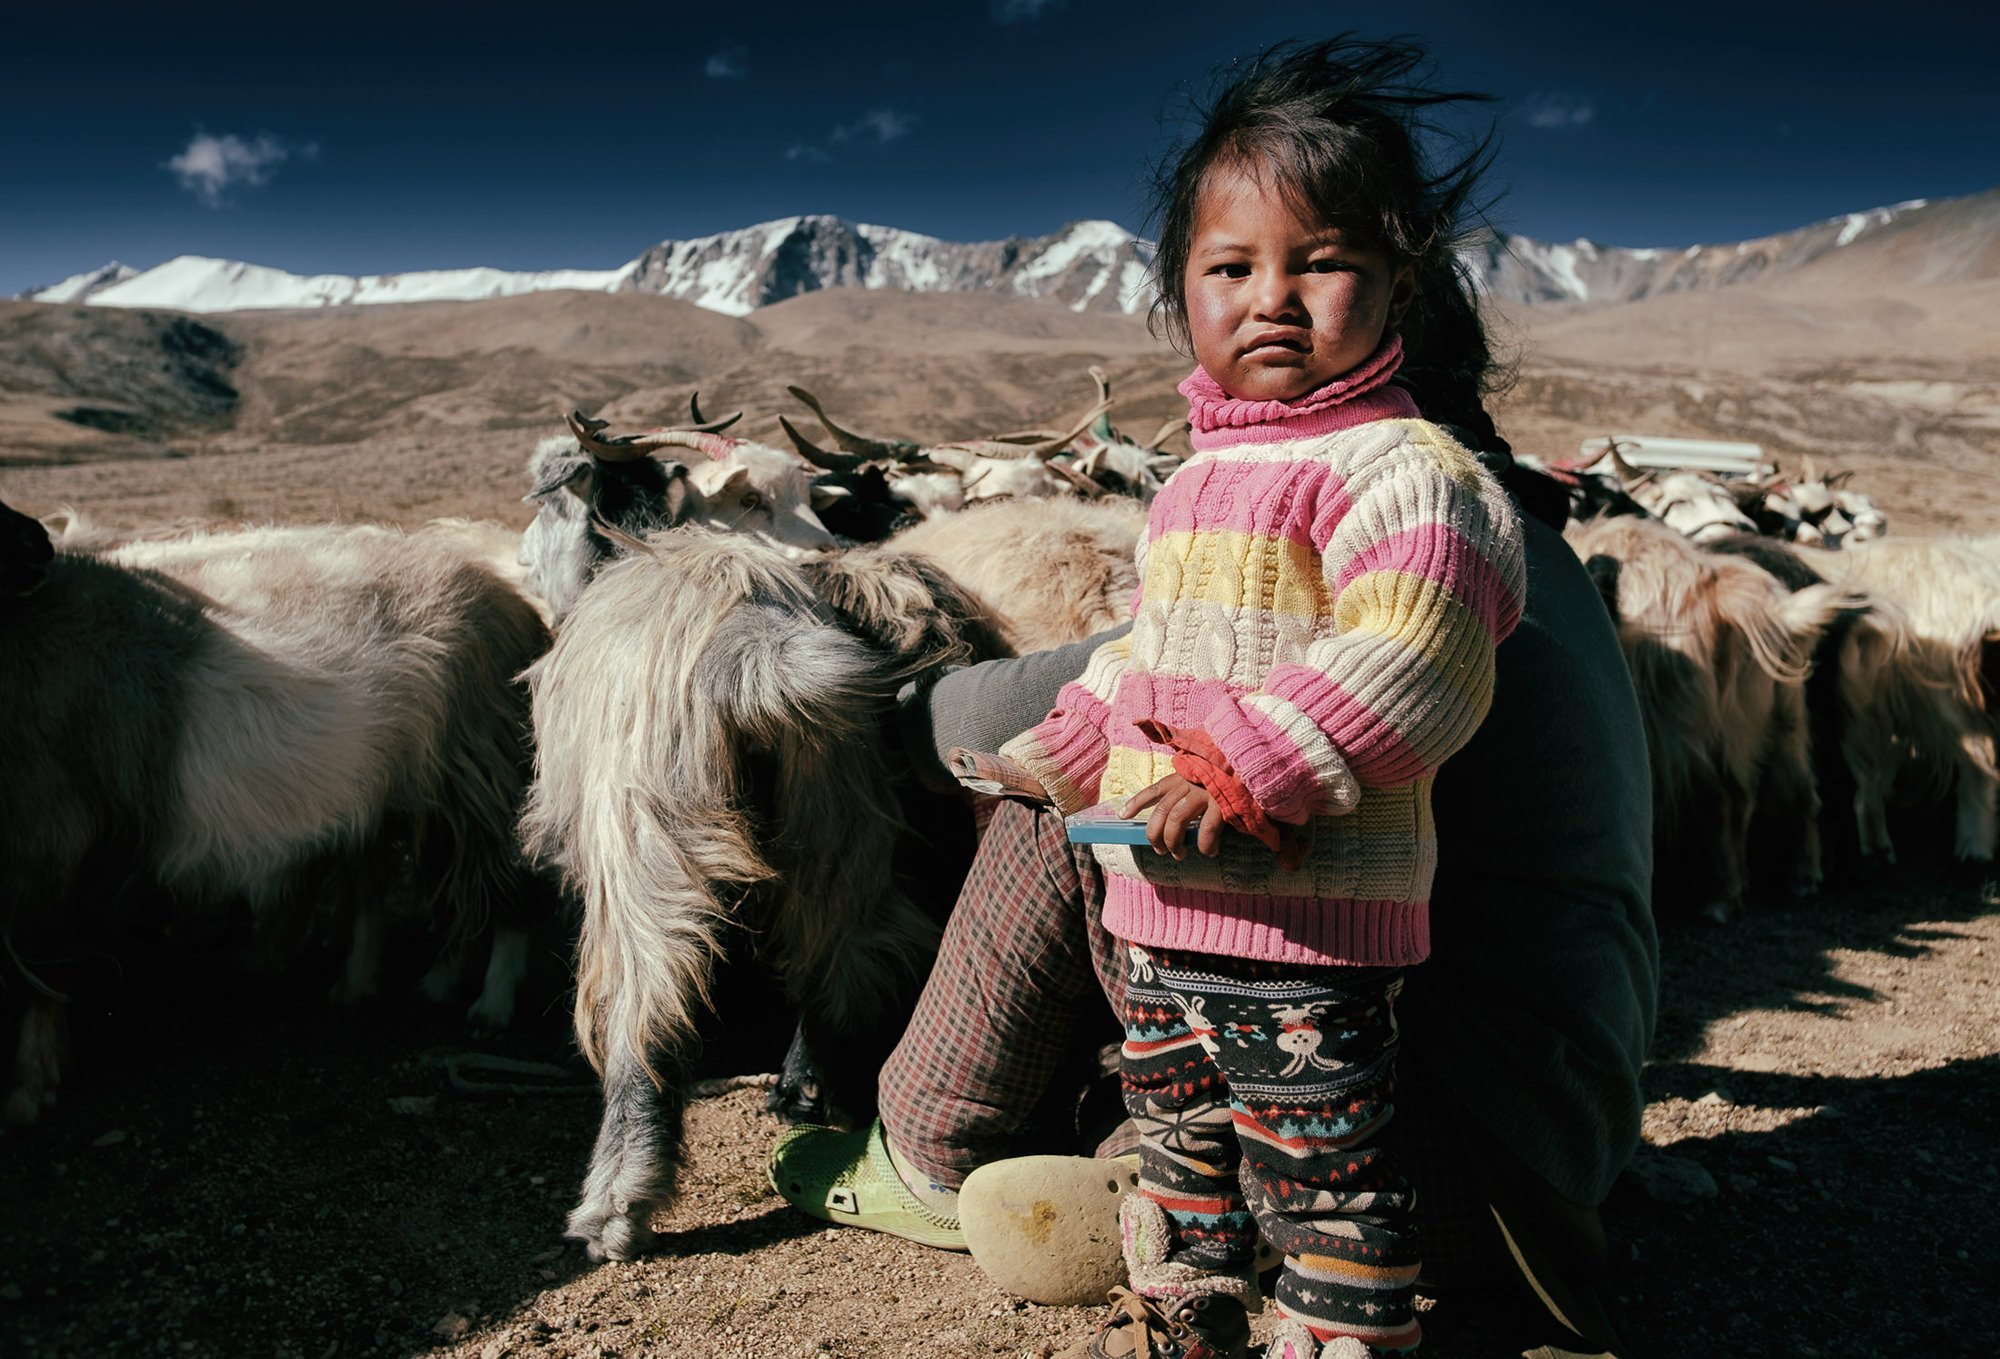 a young Changpa girl helps her mother milk the goats near Tso Moriri Lake, Ladakh © Hamish Scott-Brown